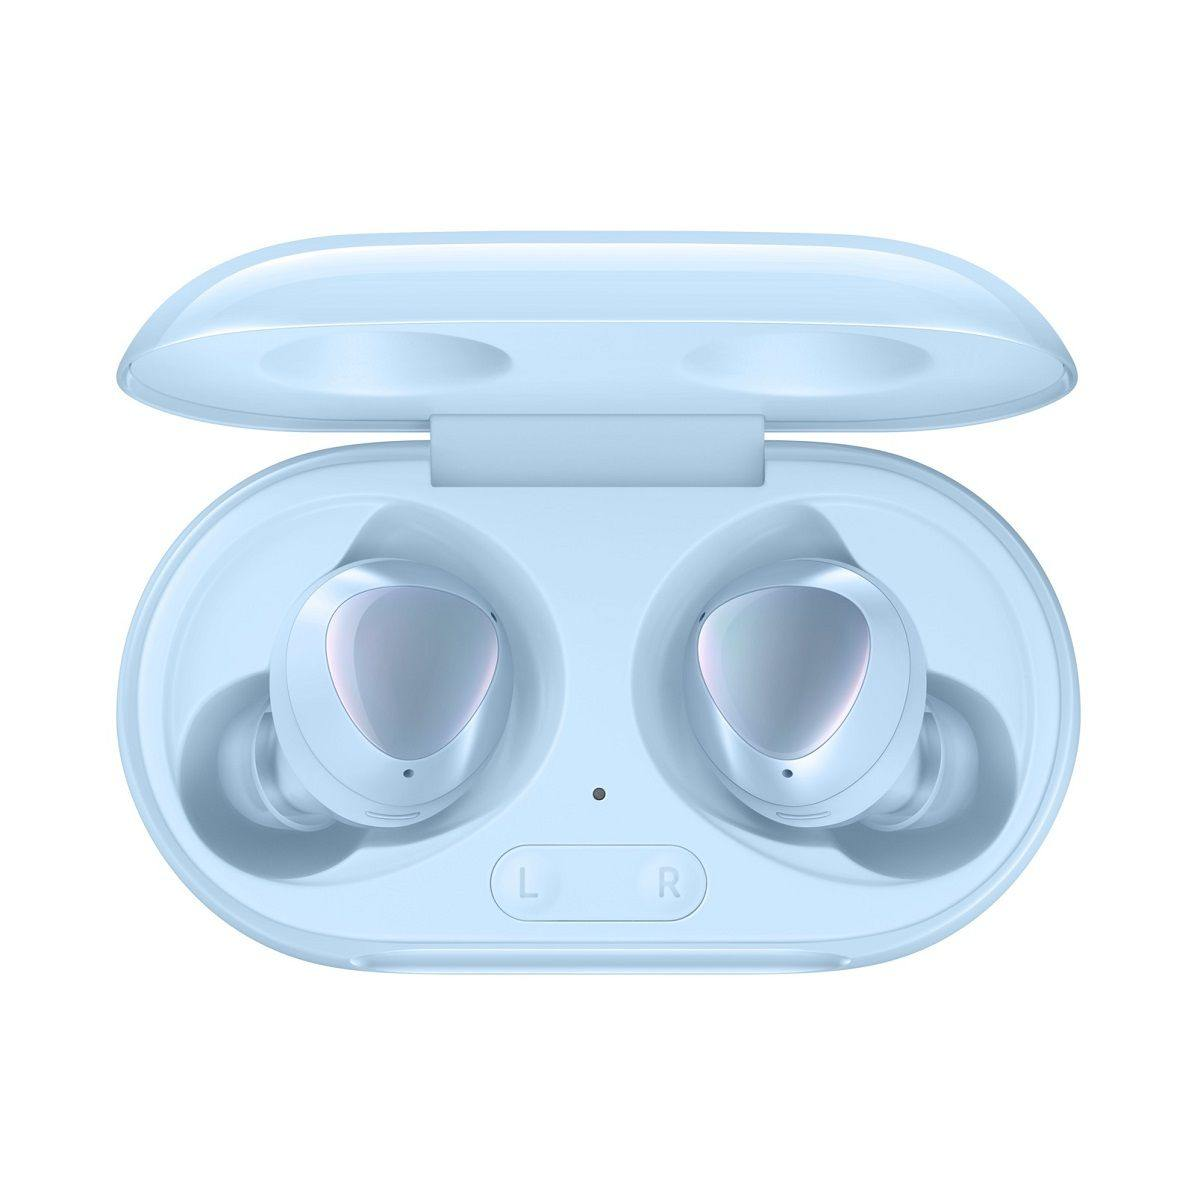 Official Samsung Galaxy Buds Plus Wireless Headphones Blue SM-R175NZBAEUB - Uk Mobile Store